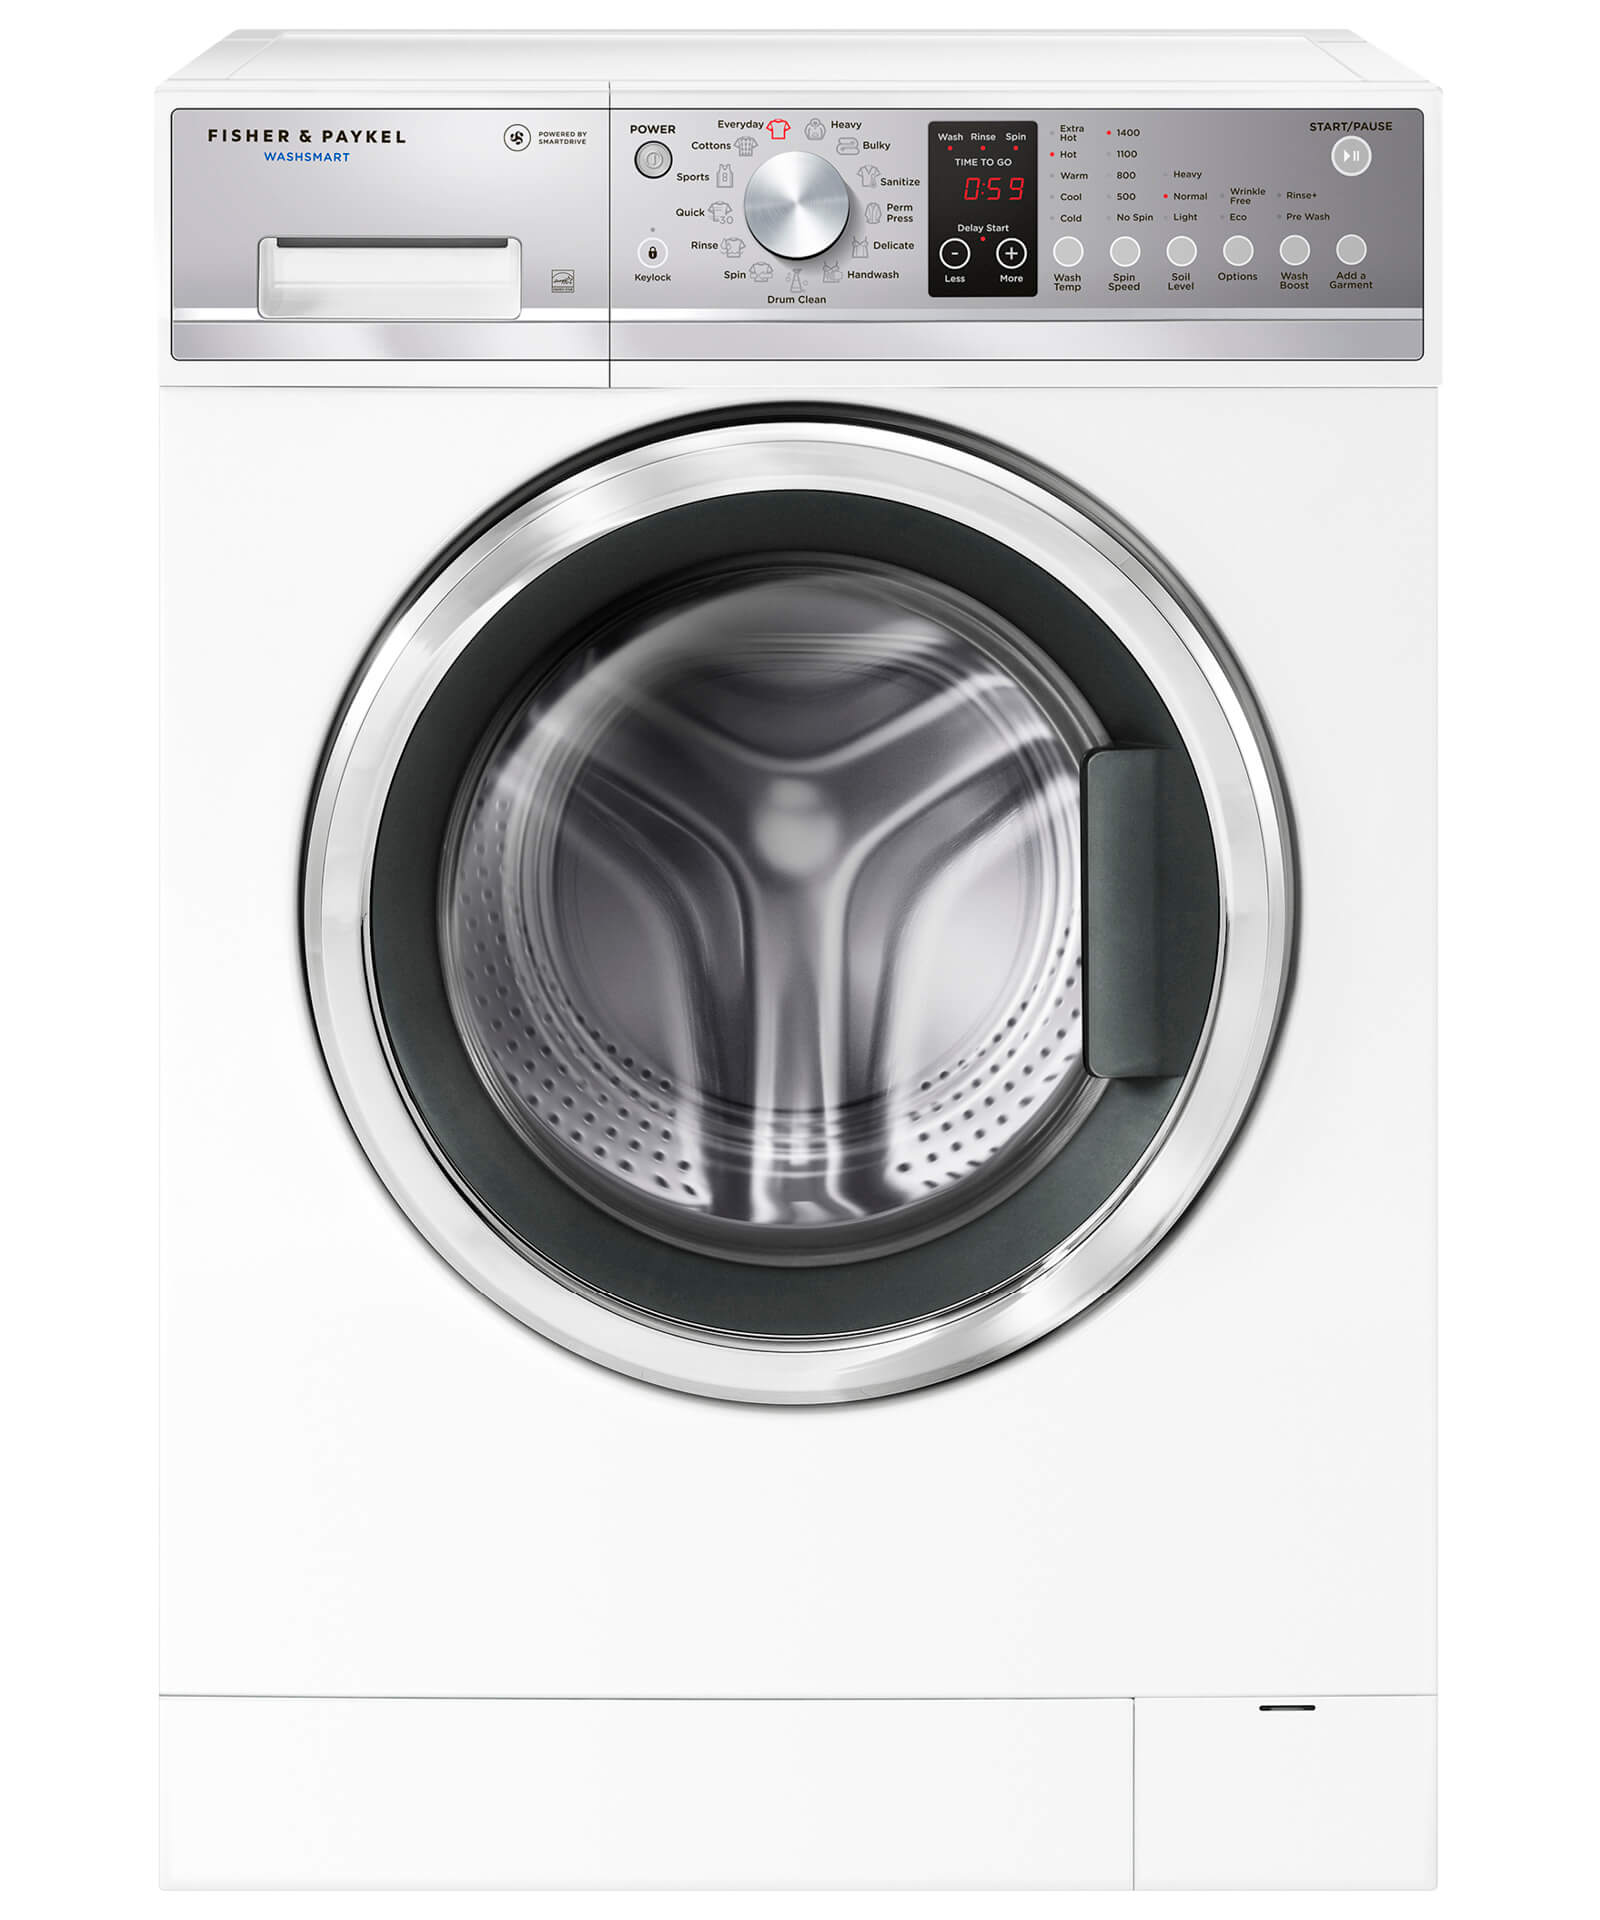 Model: WH2424P1 | Fisher and Paykel WashSmart™ Front Load Washer, 2.4 cu ft, SmartDrive™